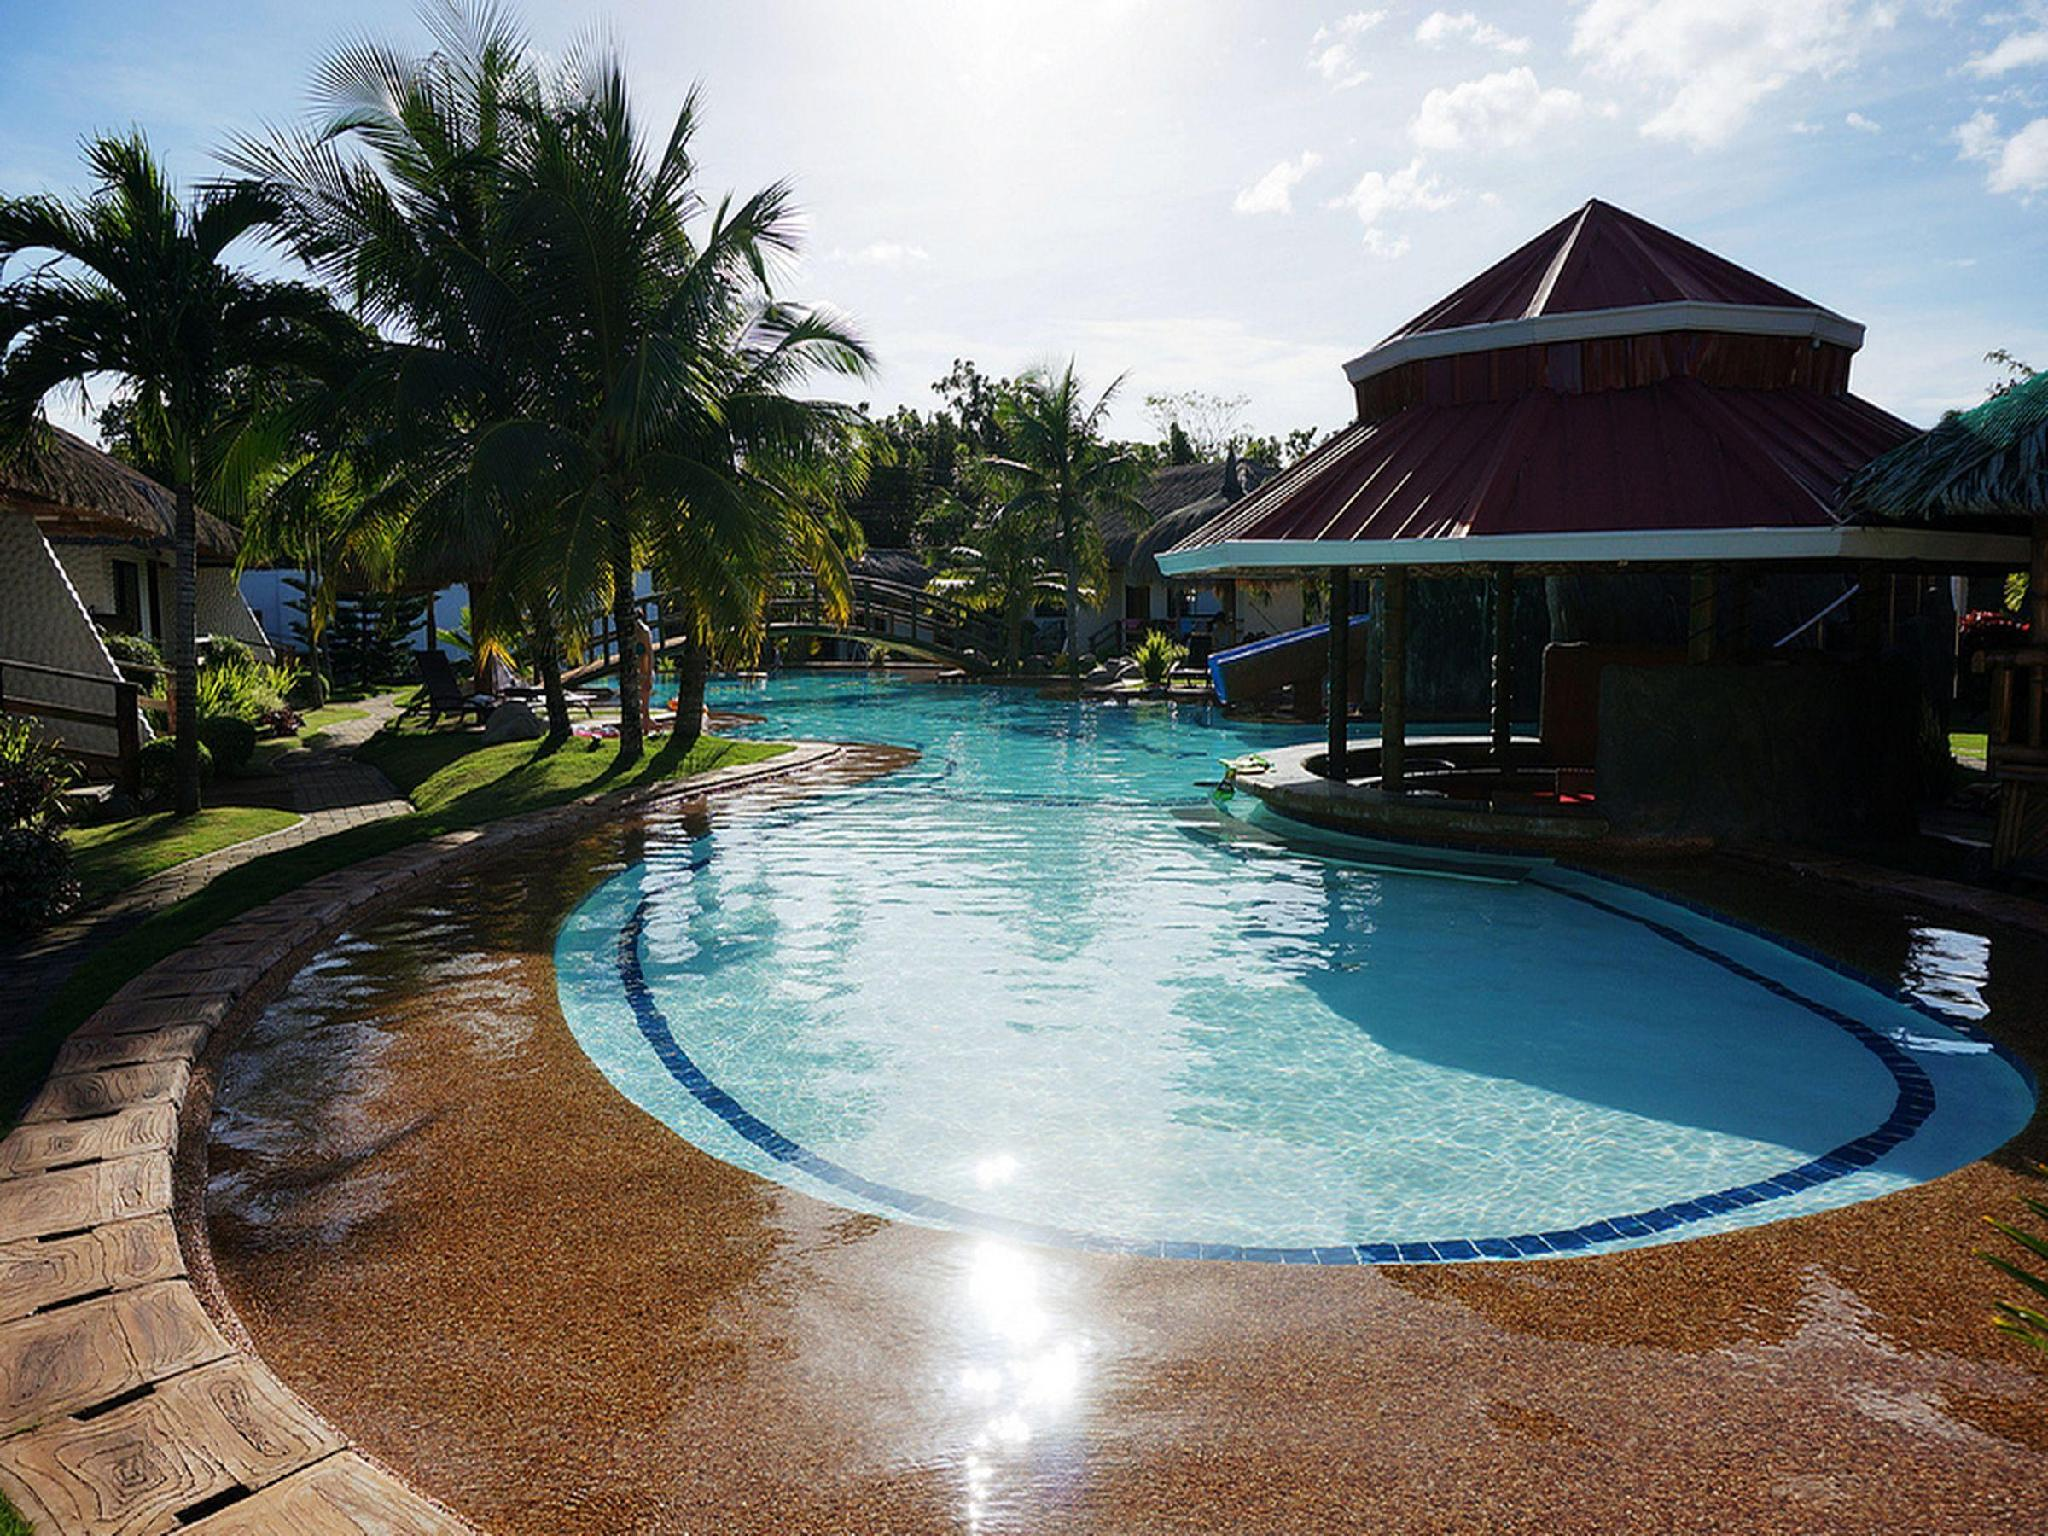 Bohol Wonderlagoon Resort बोहोल